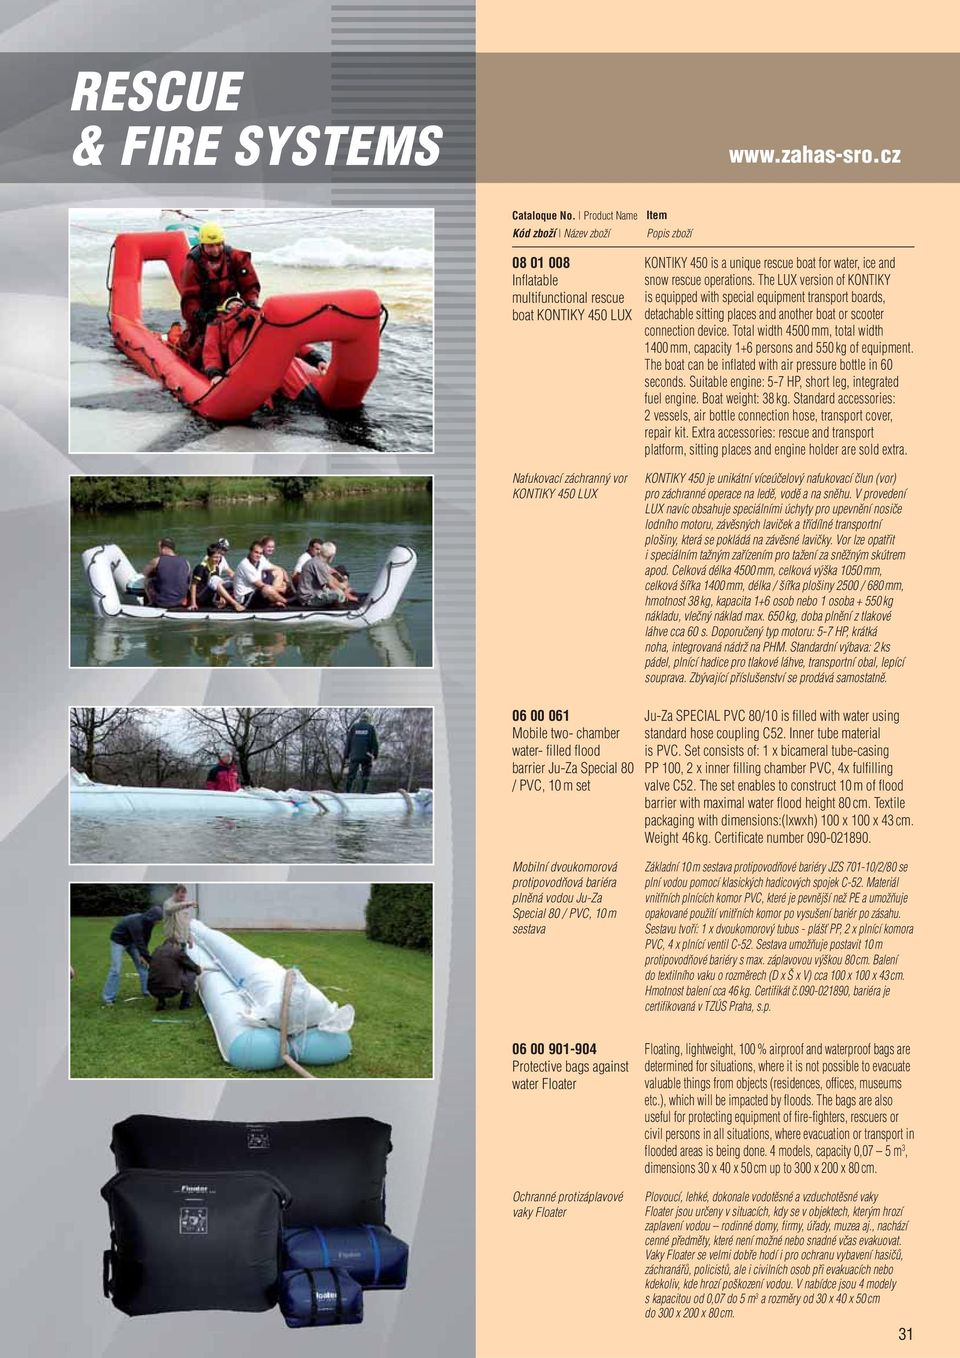 Total width 4500 mm, total width 1400 mm, capacity 1+6 persons and 550 kg of equipment. The boat can be inflated with air pressure bottle in 60 seconds.